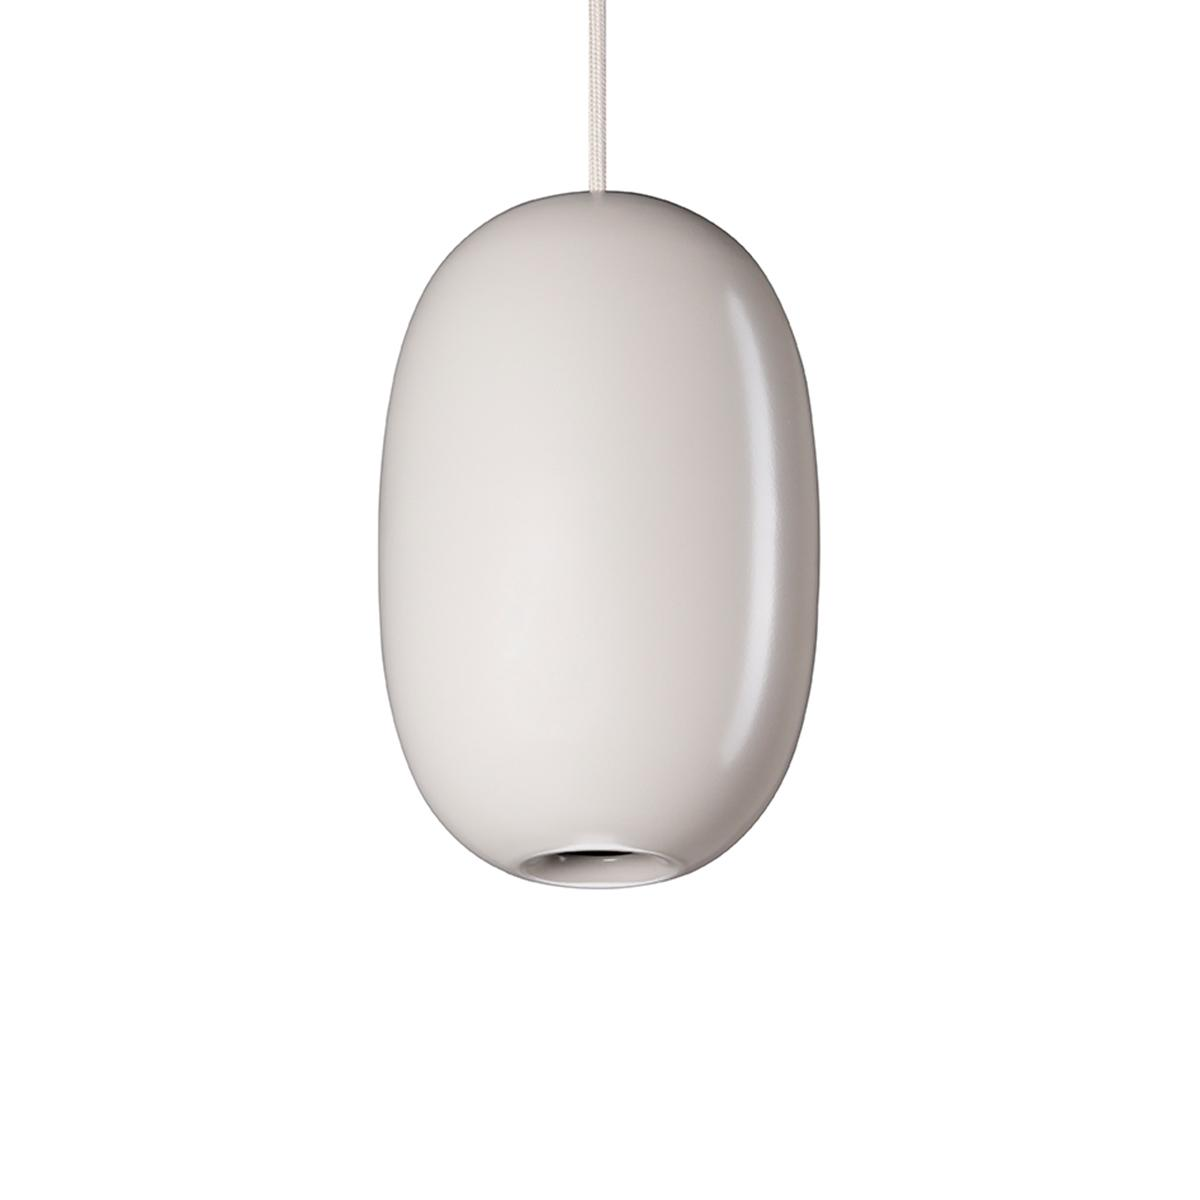 Pebble-Pendant-Long-White-Sheet-Metal-TILE-WEB